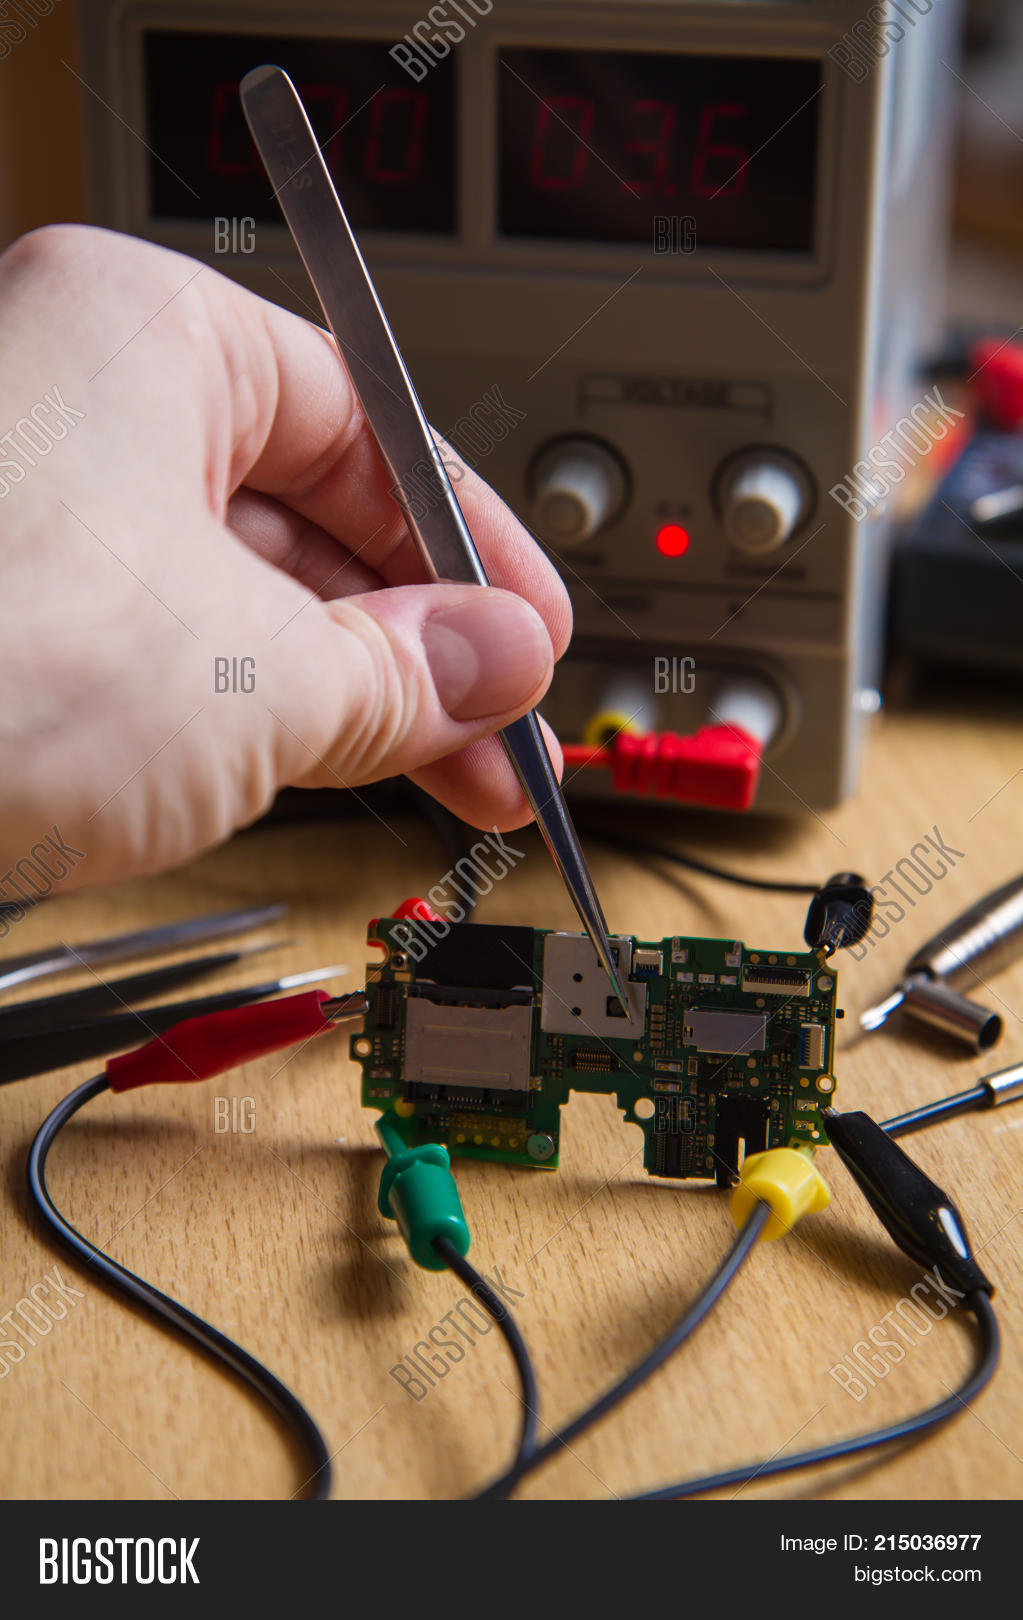 Circuitboardtablejpg Repair Electronic Image Photo Free Trial Bigstock Circuit Board Manually Tweezers Probes Measuring Device Probe Of Oscilloscope Card Chips Power